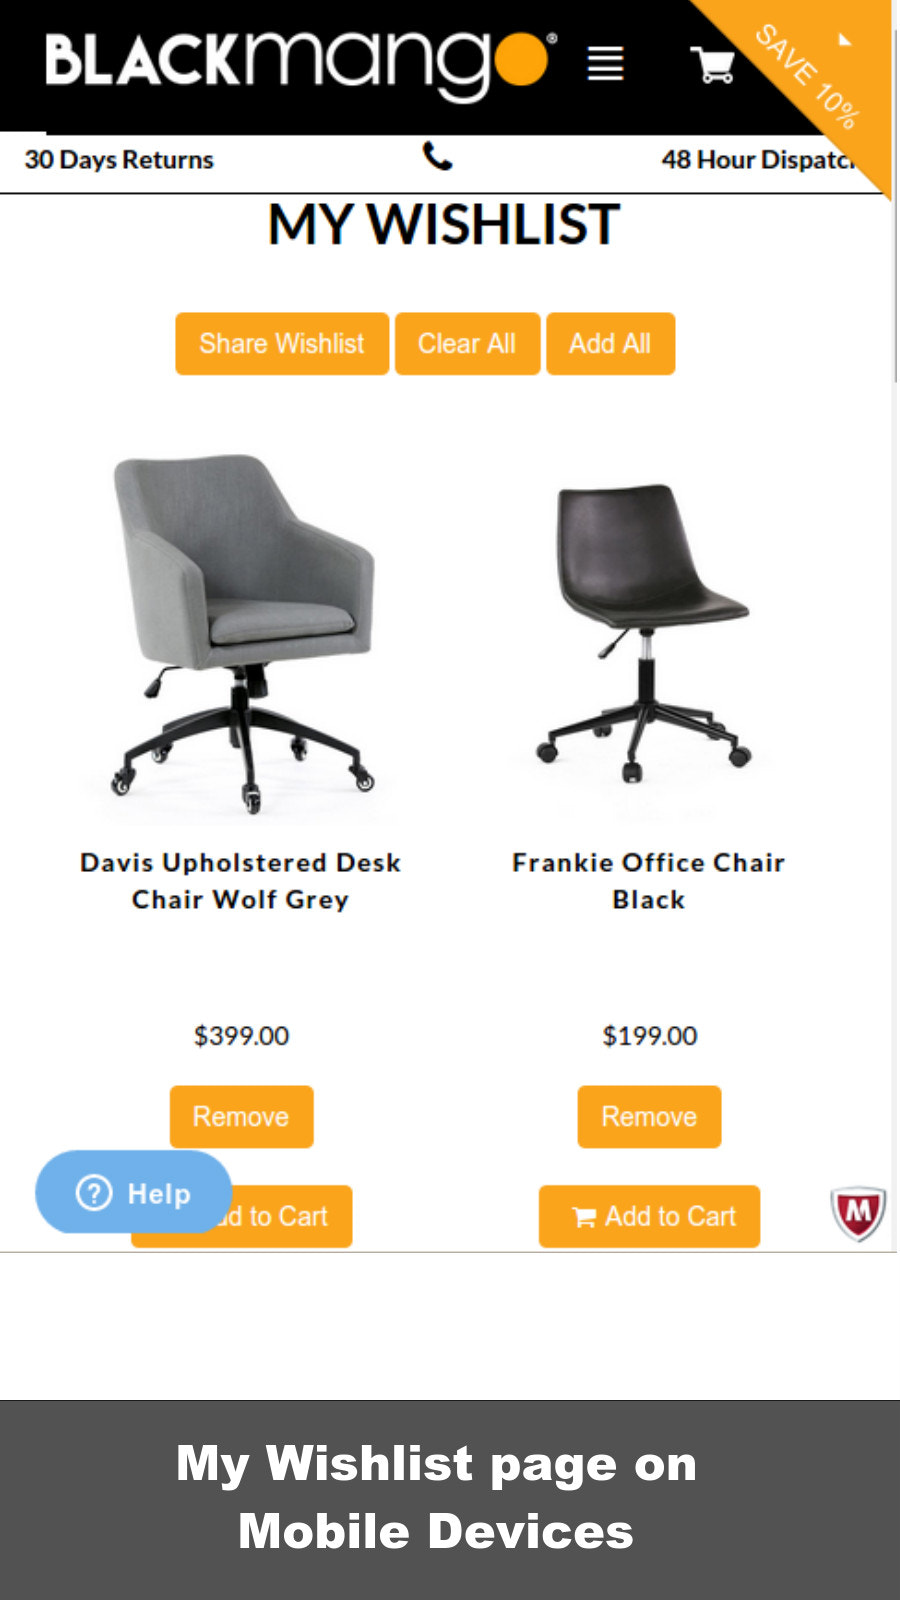 My Wishlist page generated by Smart Wishlist on Mobile Devices